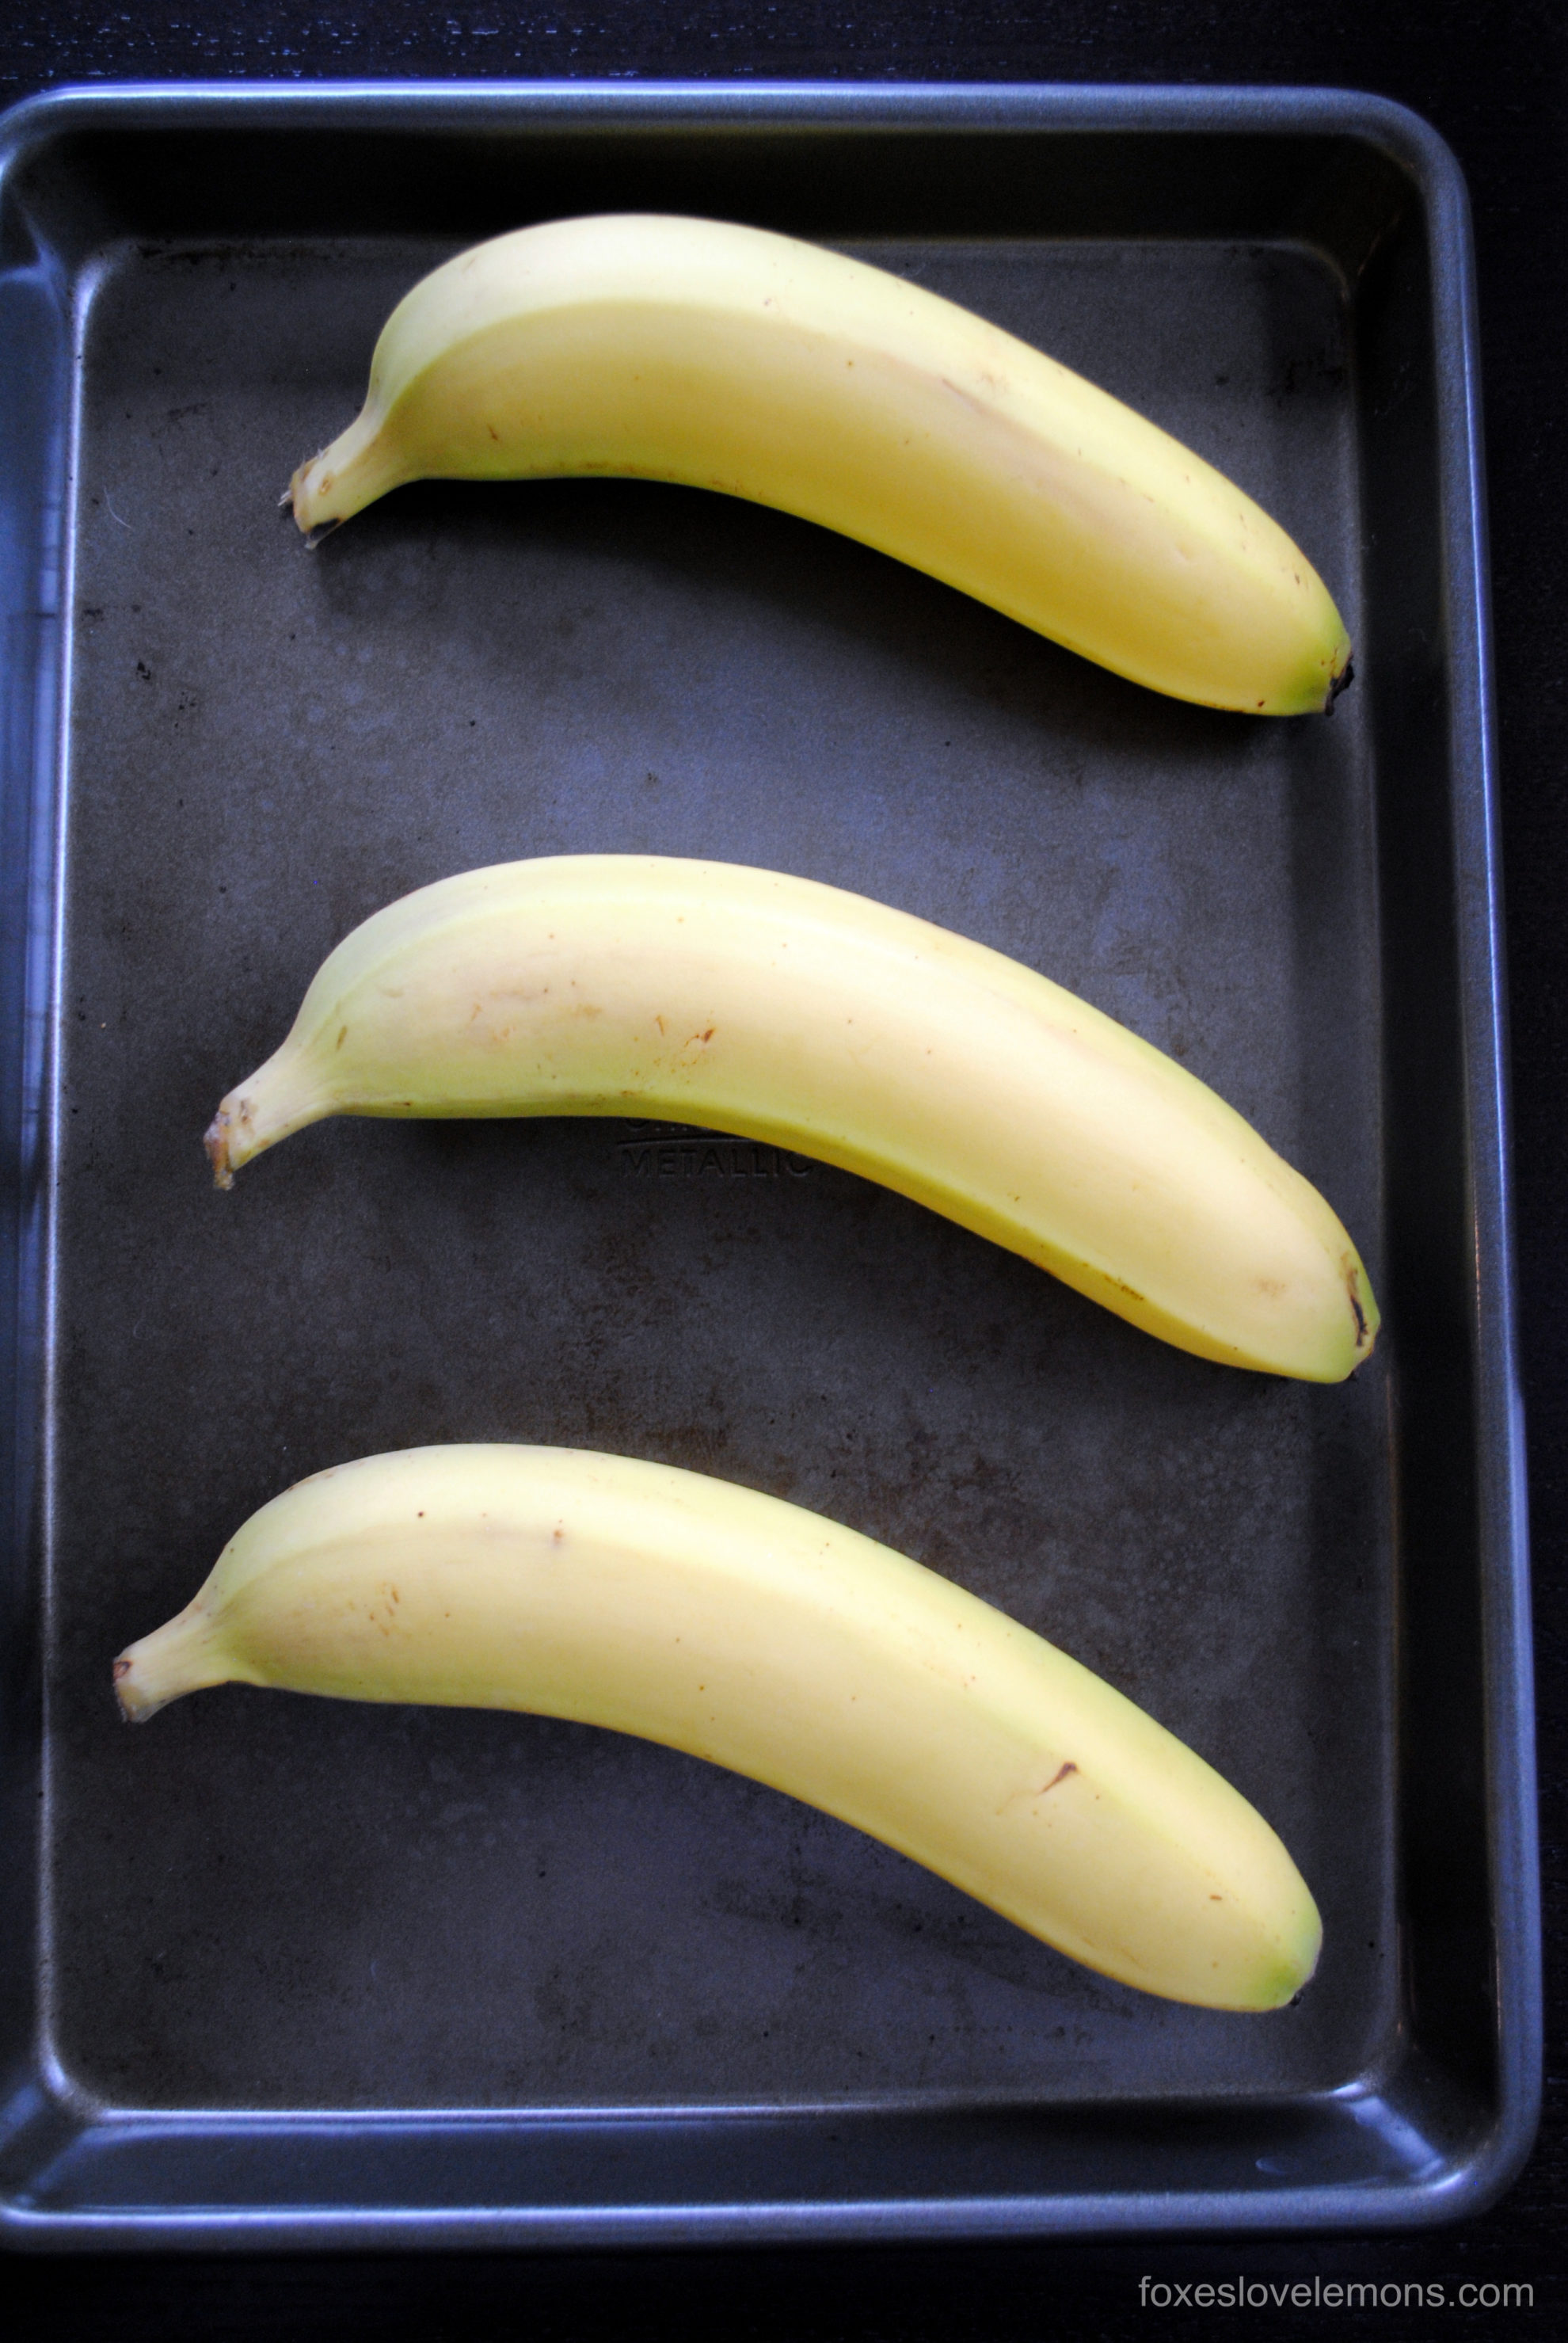 How To Use Your Oven To Ripen Bananas Foxes Love Lemons